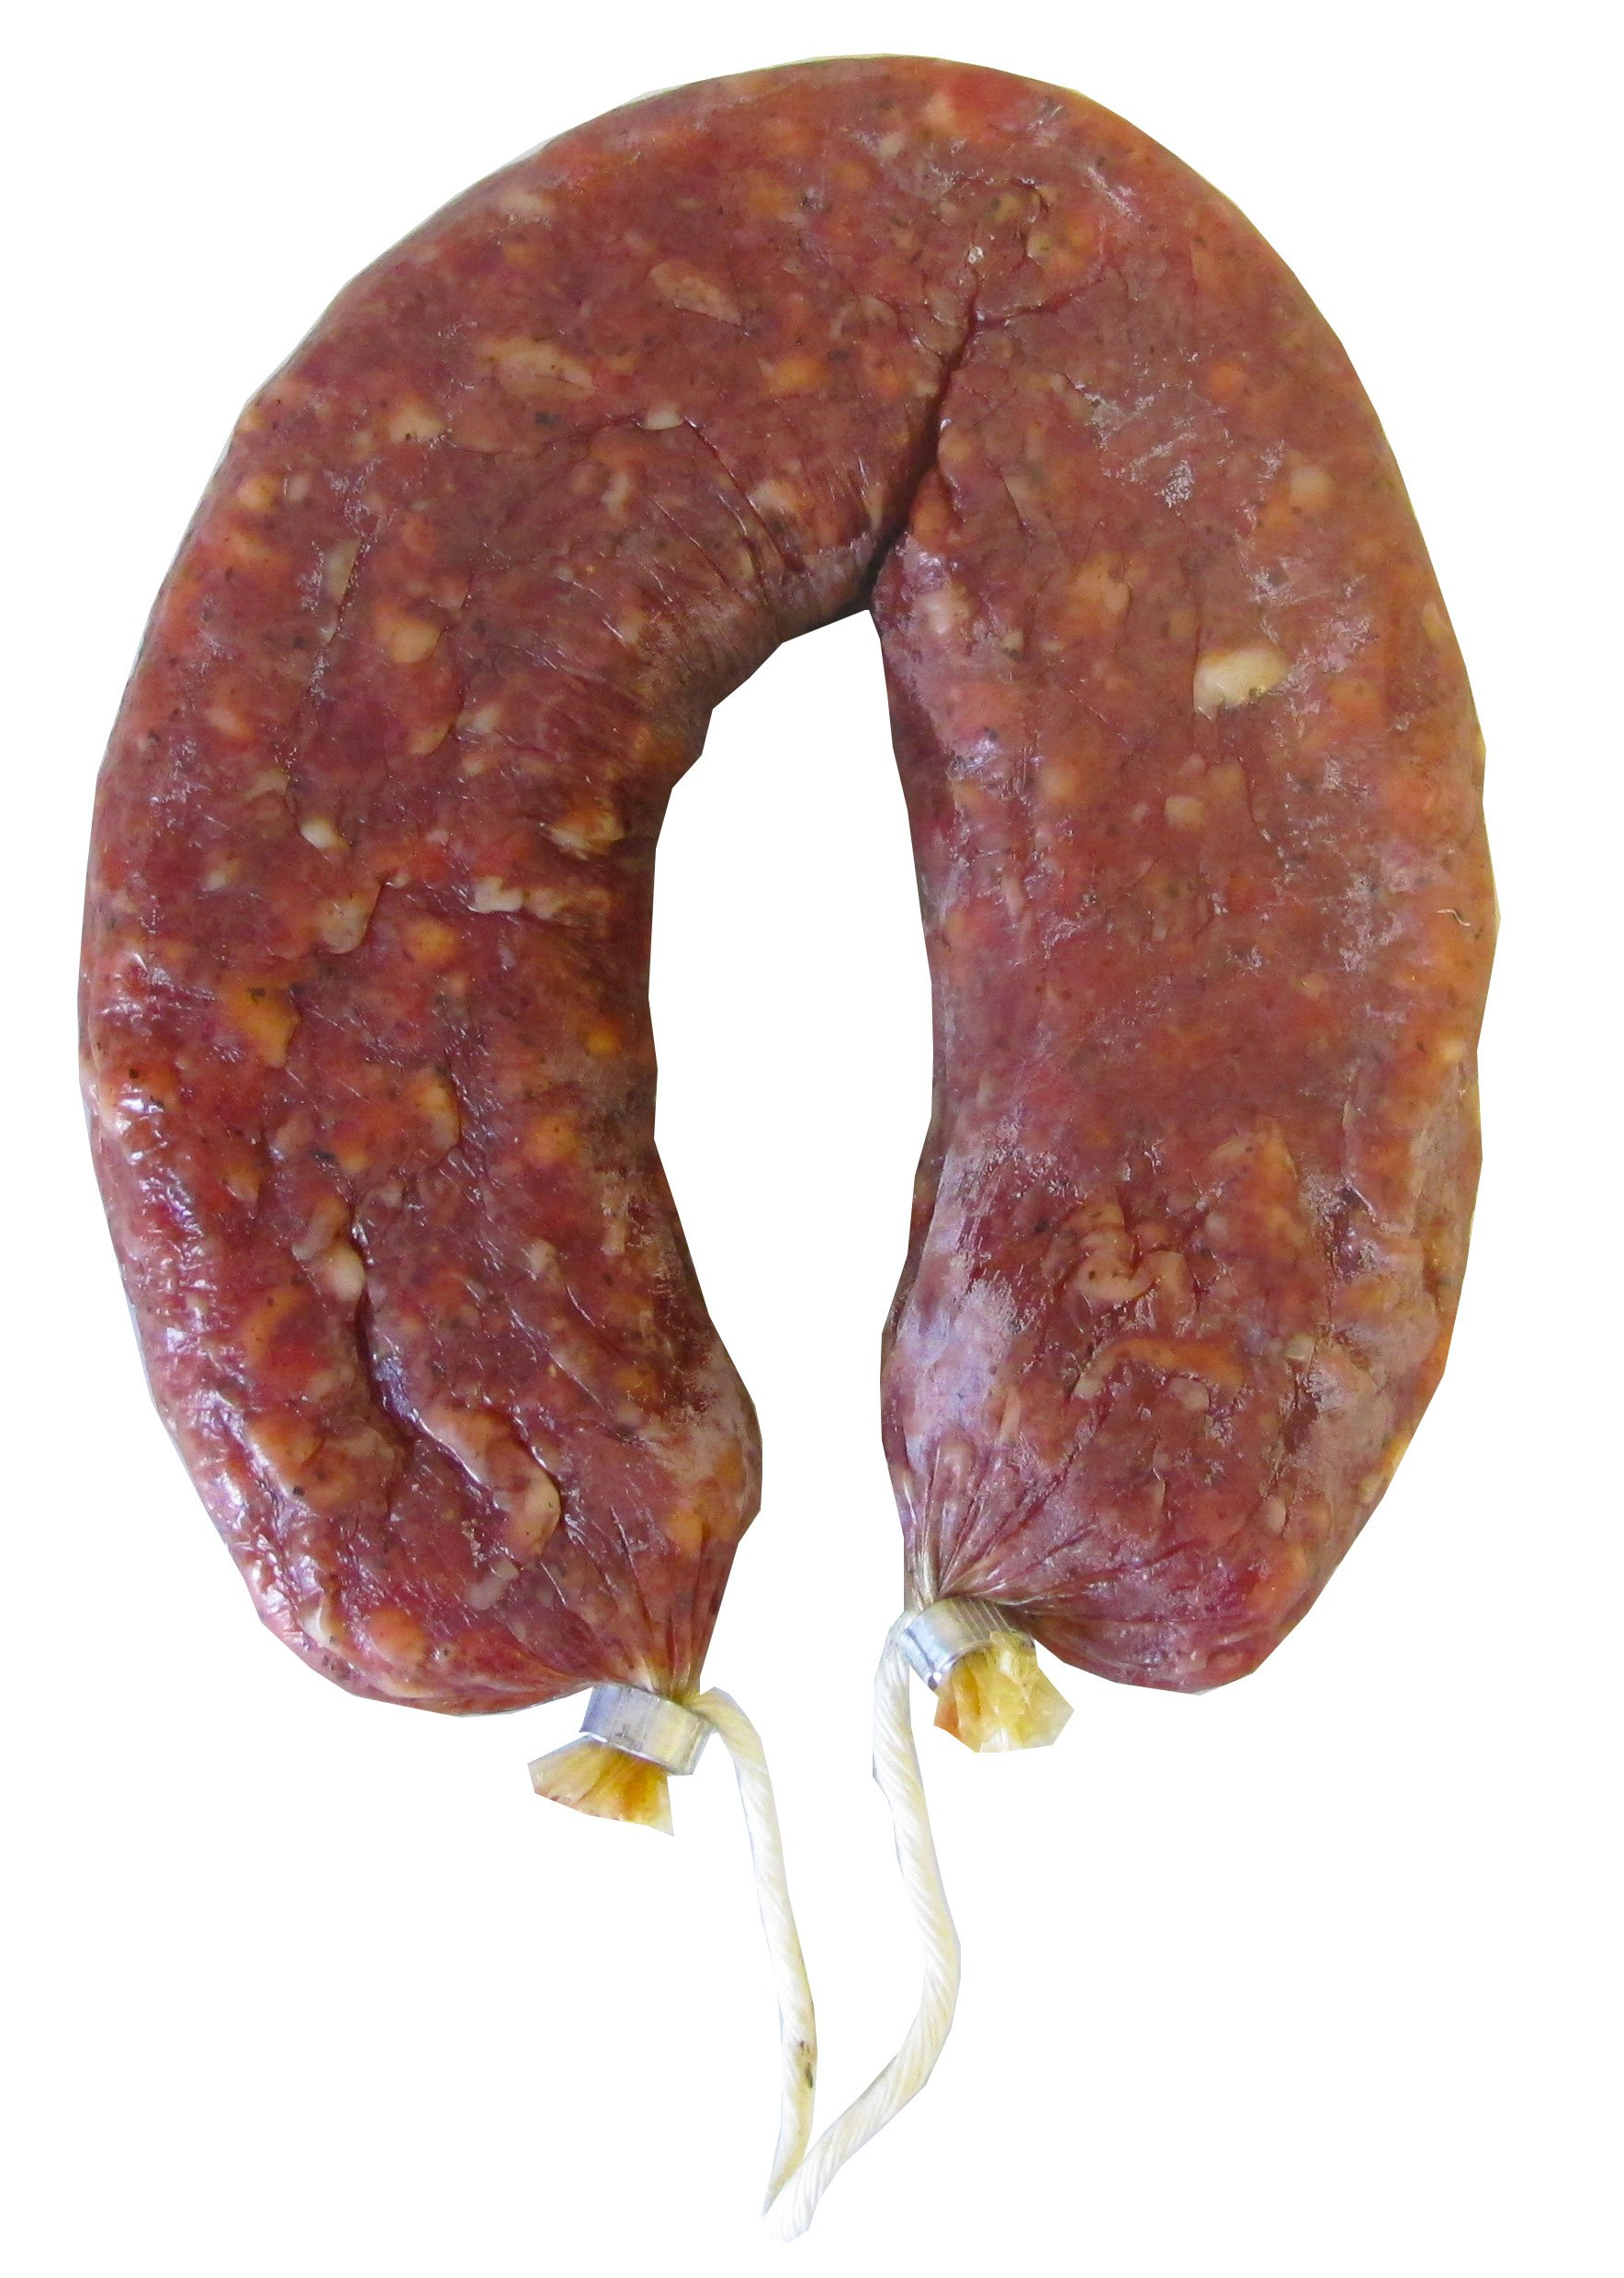 DRY CURED PORK SALAMI (SELSKI SOUDJOUK) - 2 PC - EACH PIECE IS B/N 0.65-0.75 LB by Hebros Foods